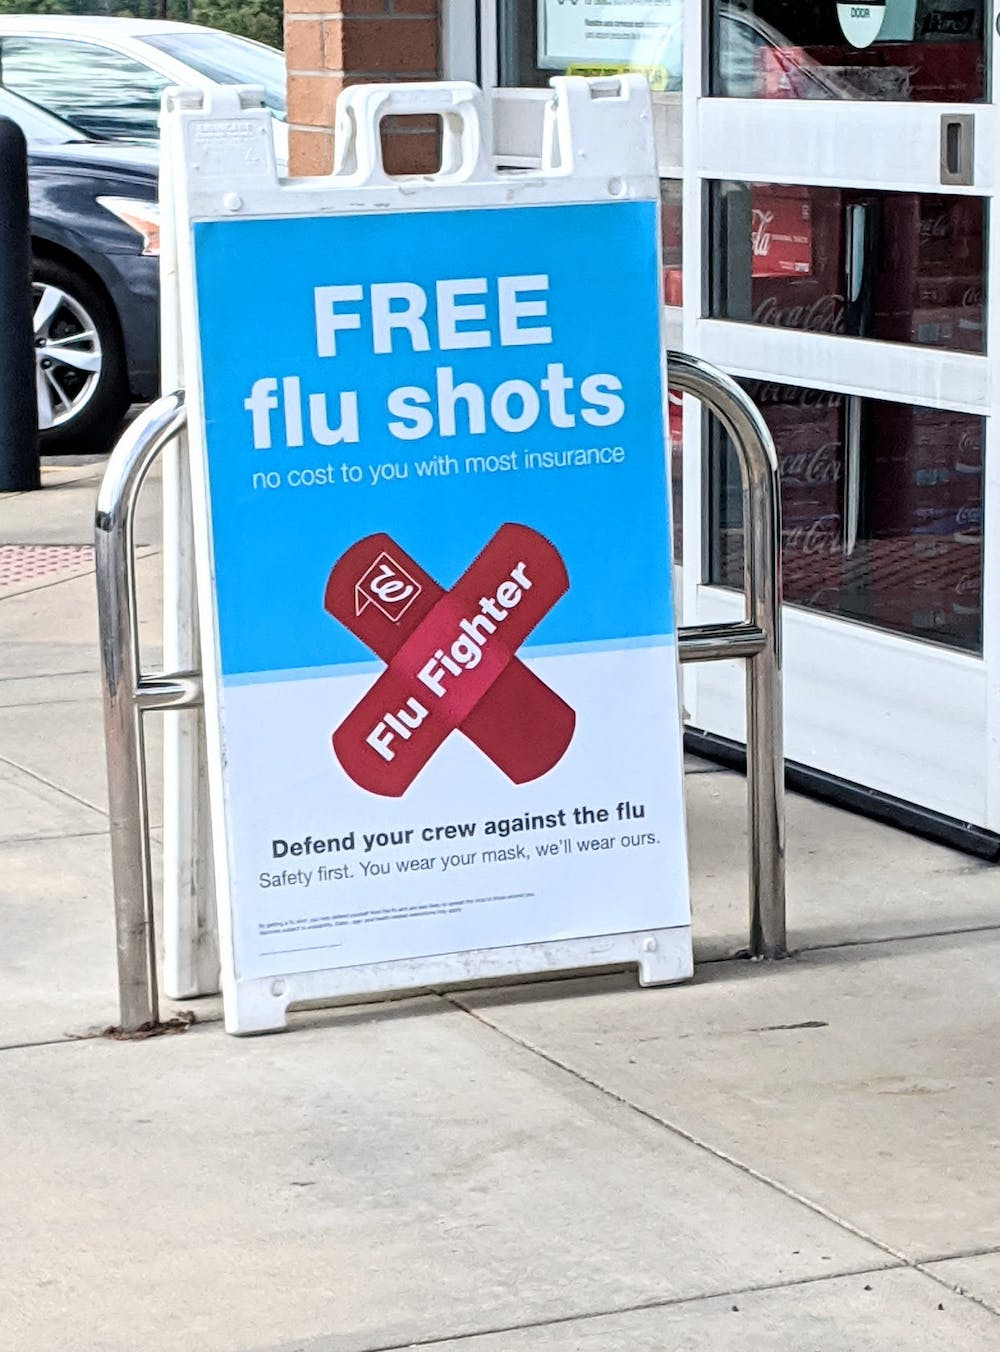 Medical experts advocate students to get flu shots